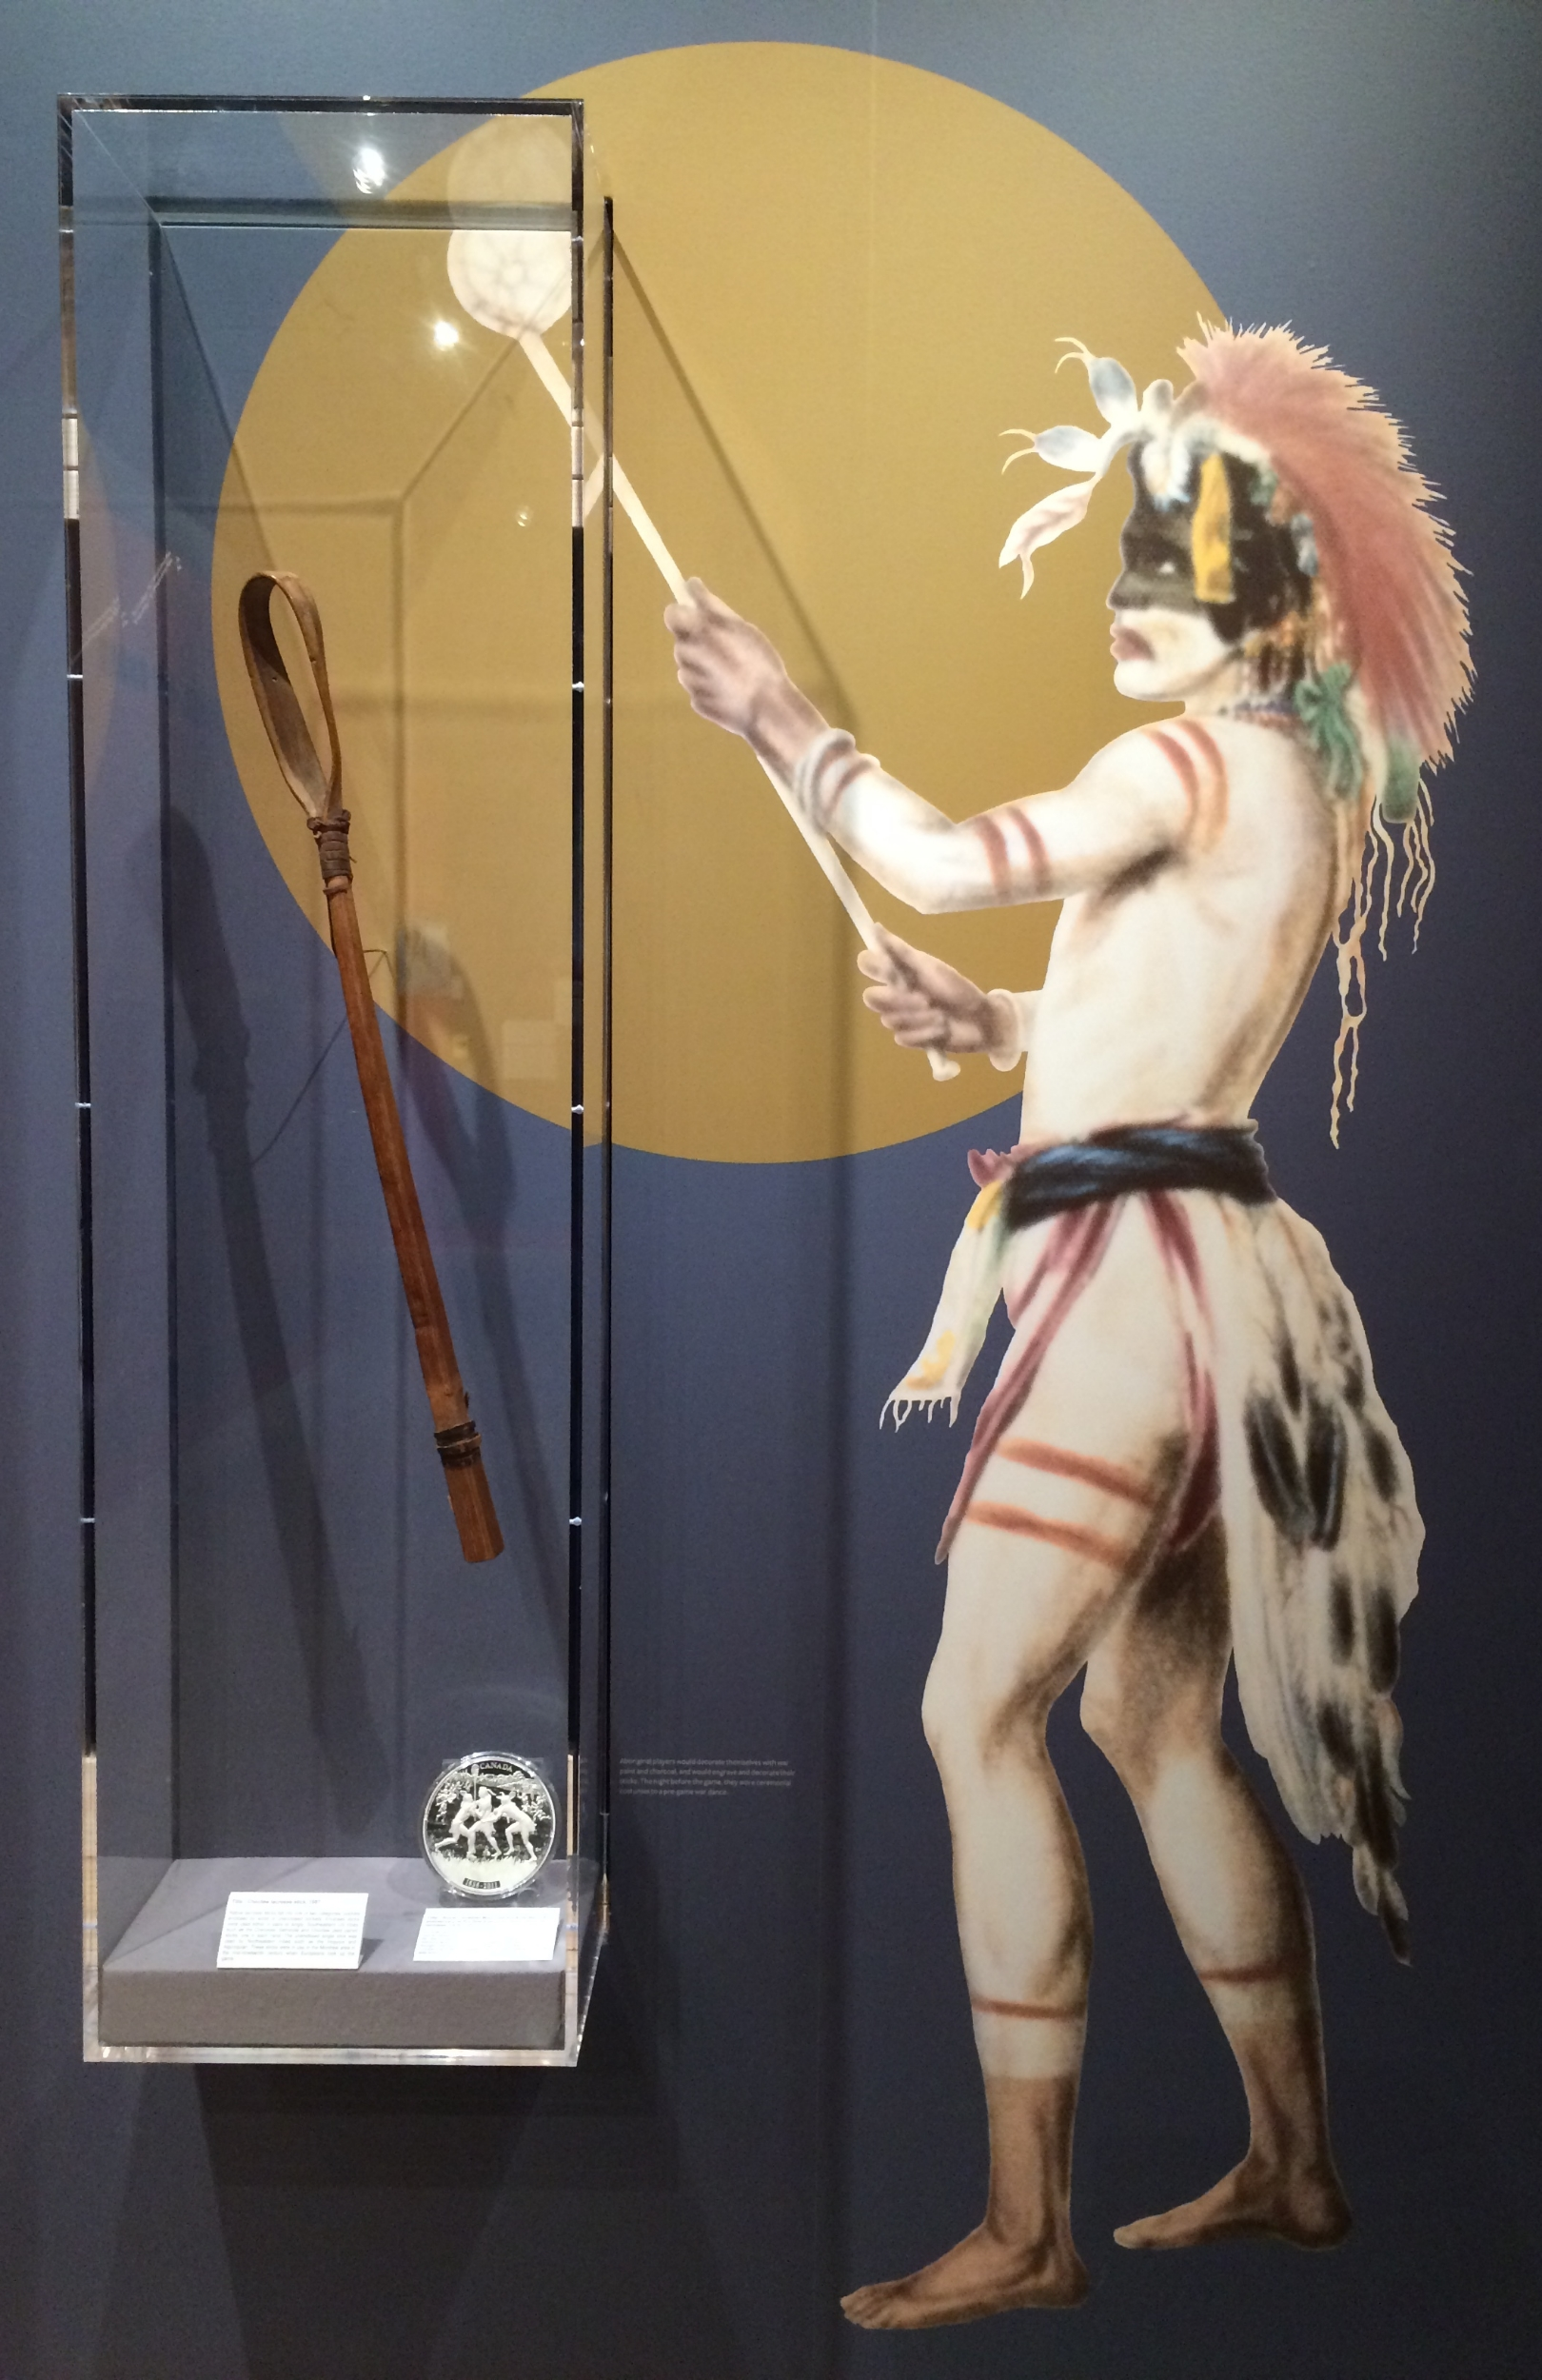 One of the exhibits at the Canadian Lacrosse Hall of Fame, New Westminster